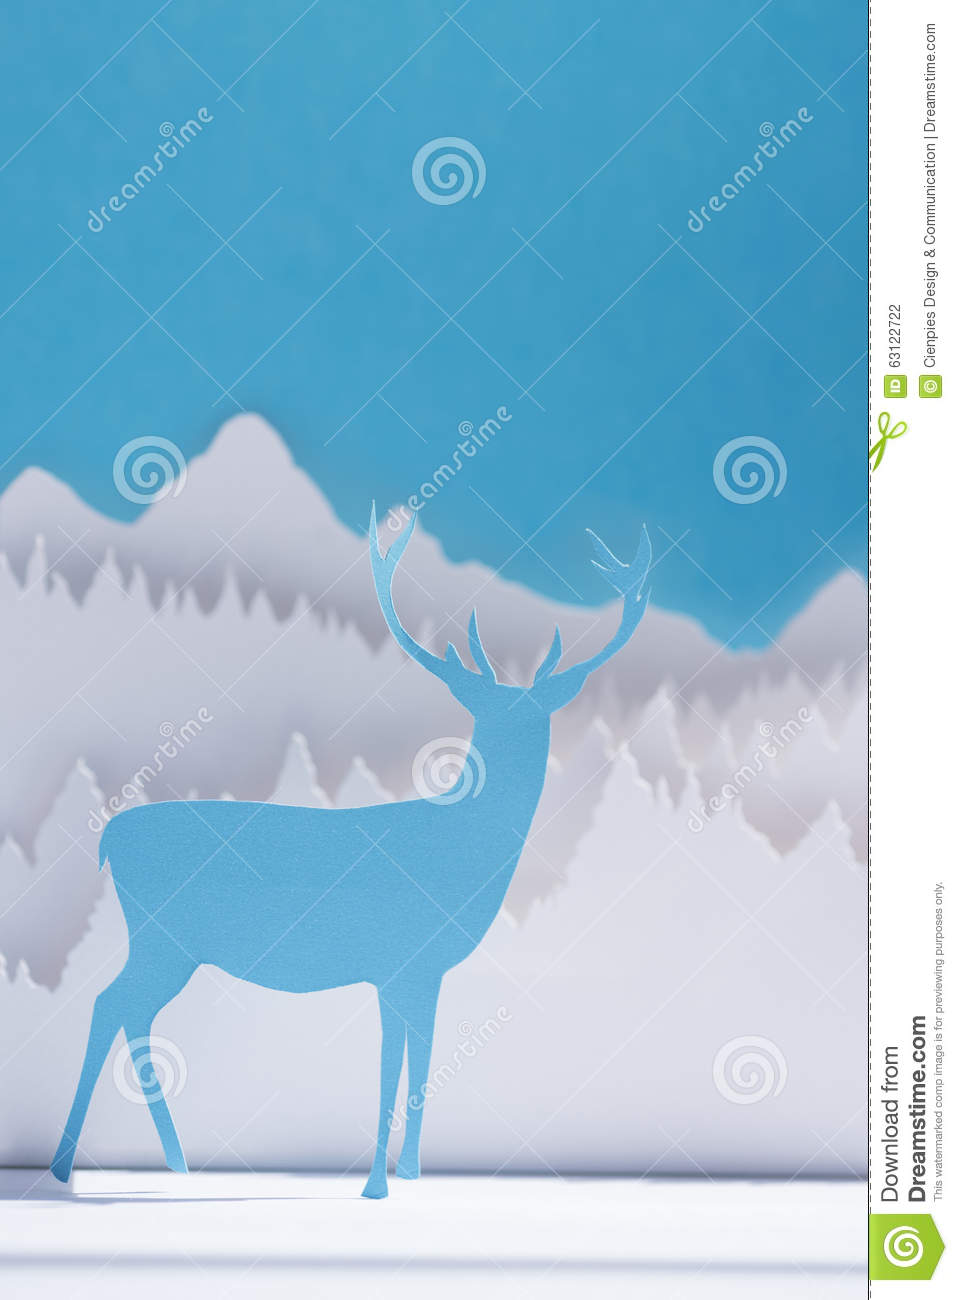 Paper cut deer handmade craft holiday blue card stock for Craft paper card stock